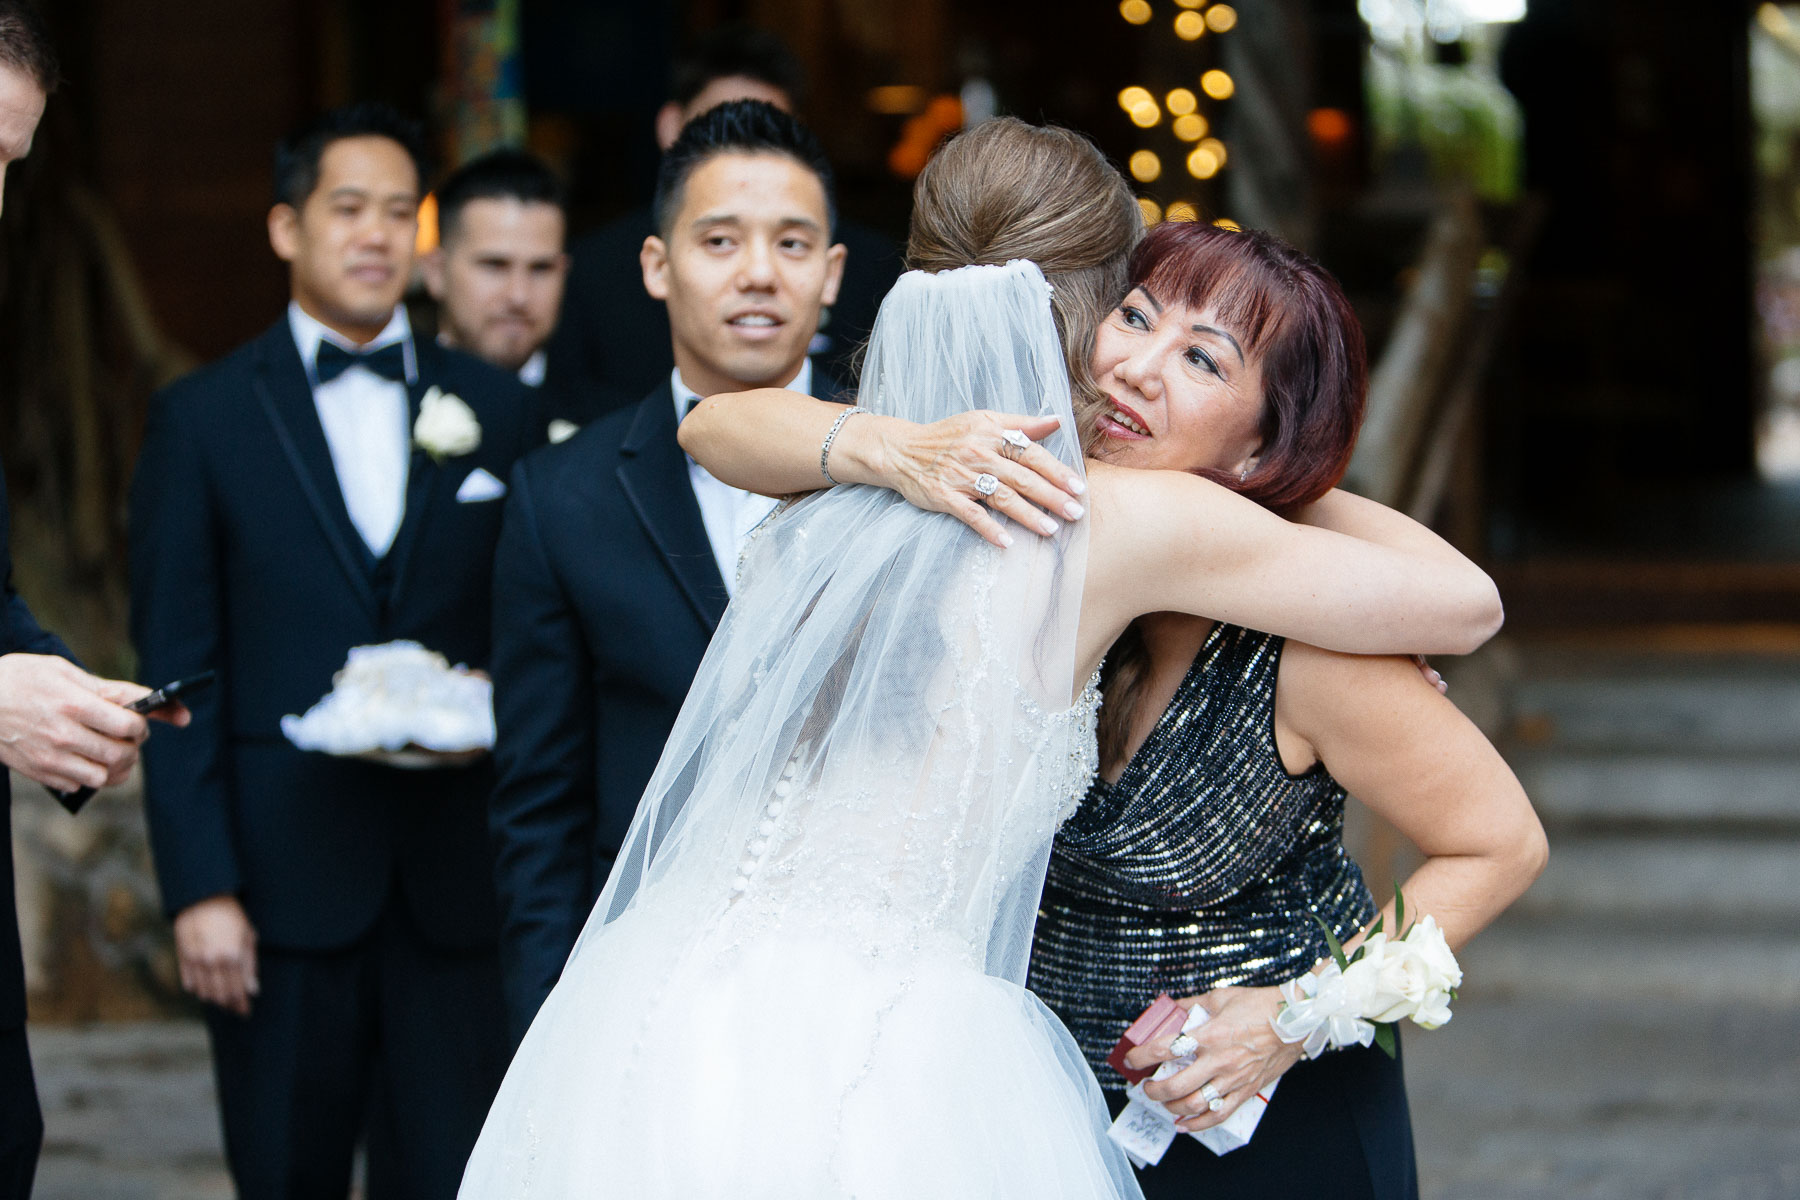 161112-Luxium-Weddings-Arizona-Jon-Madison-Boojum-Tree-First-Look-029.jpg